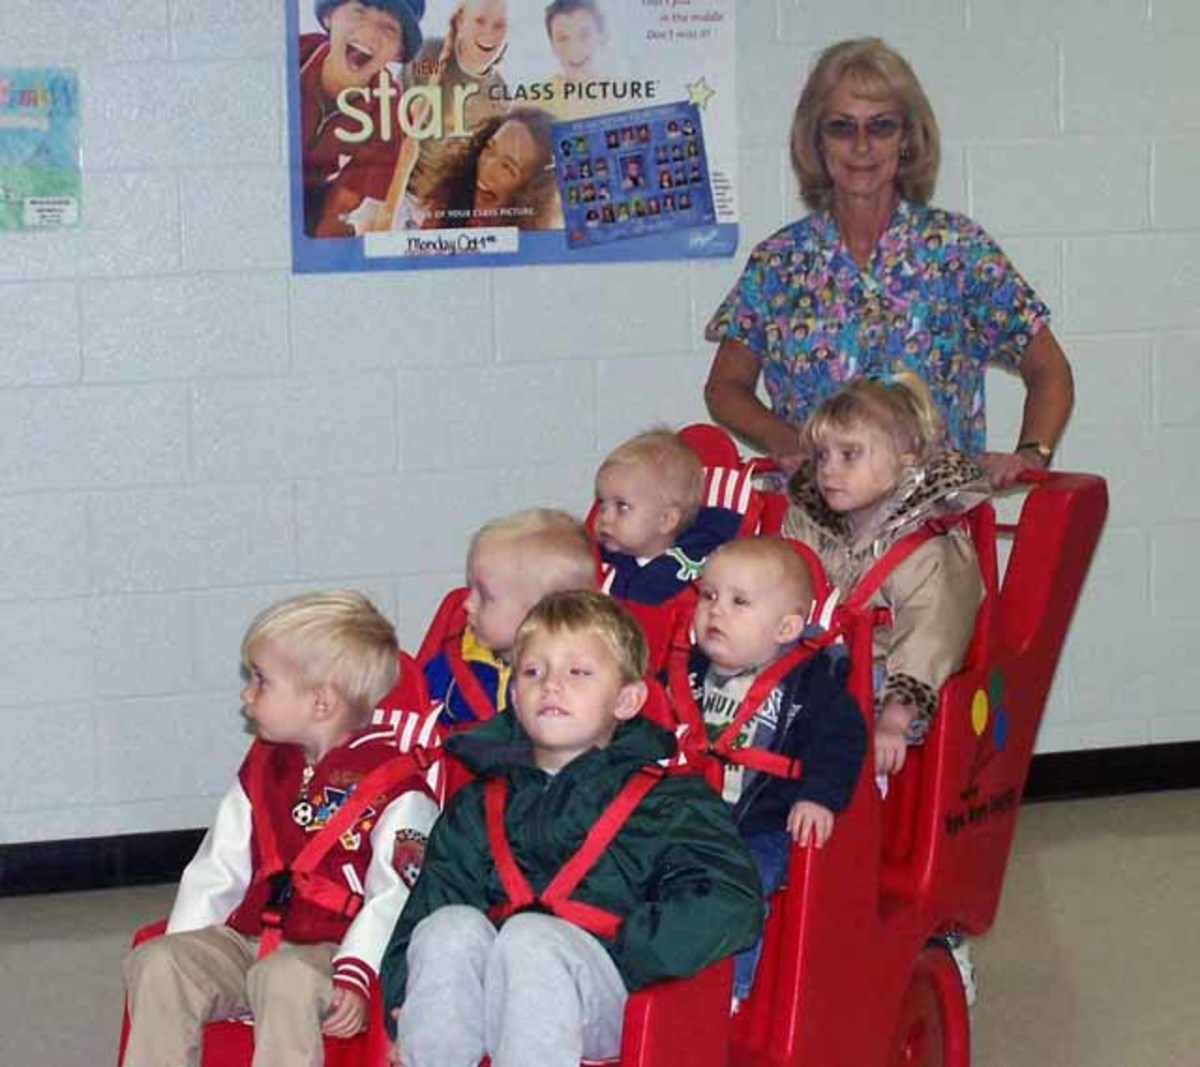 Children at a daycare go out in a modified stroller